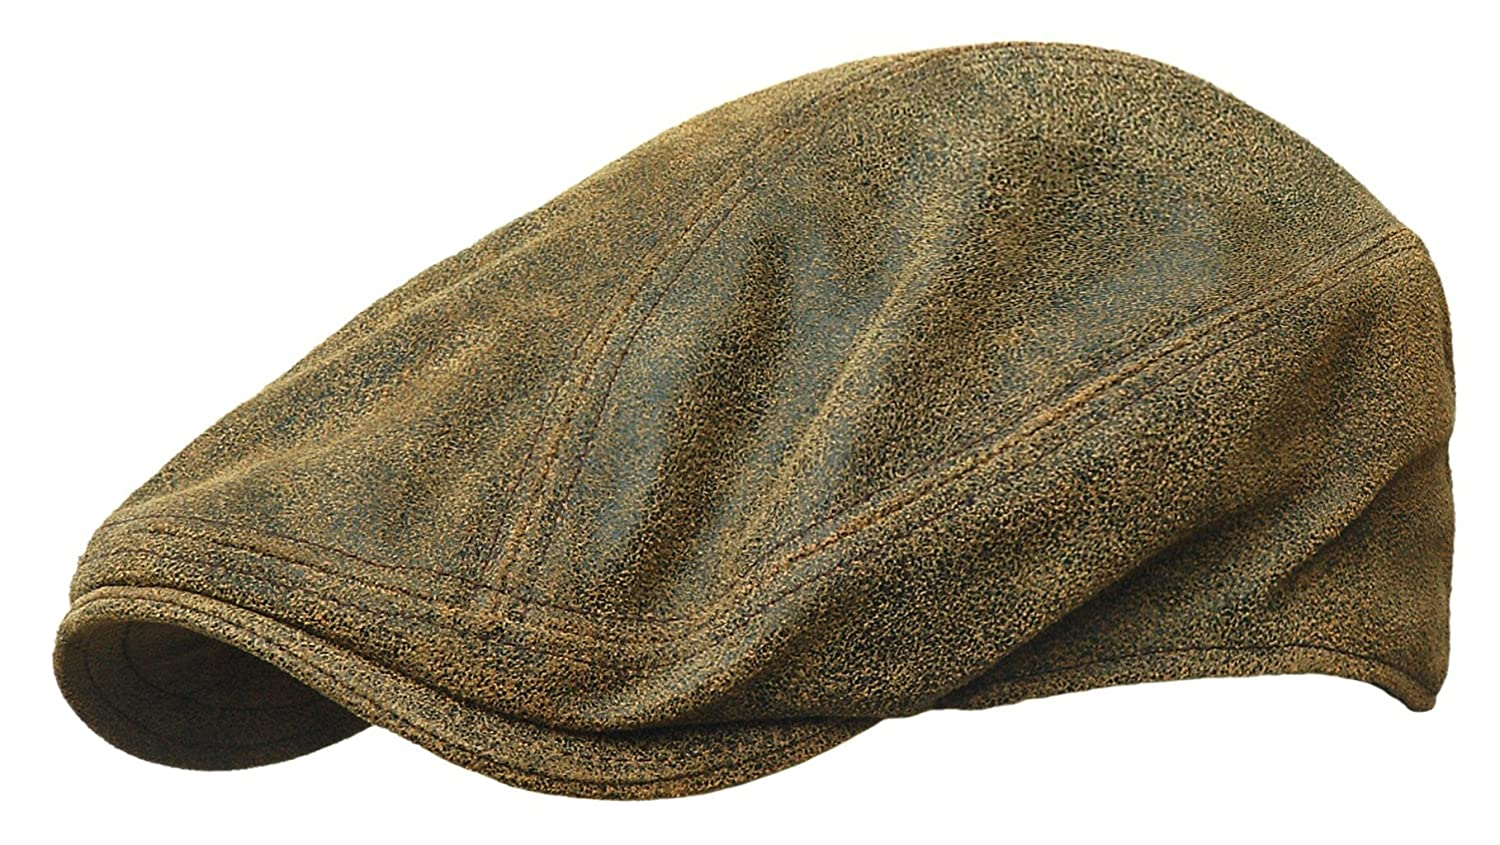 44ef5c1efbf ROOSTER Distressed Leather Ivy Cap Newsboy Gatsby Driving Hat Golf Brown at  Amazon Men s Clothing store